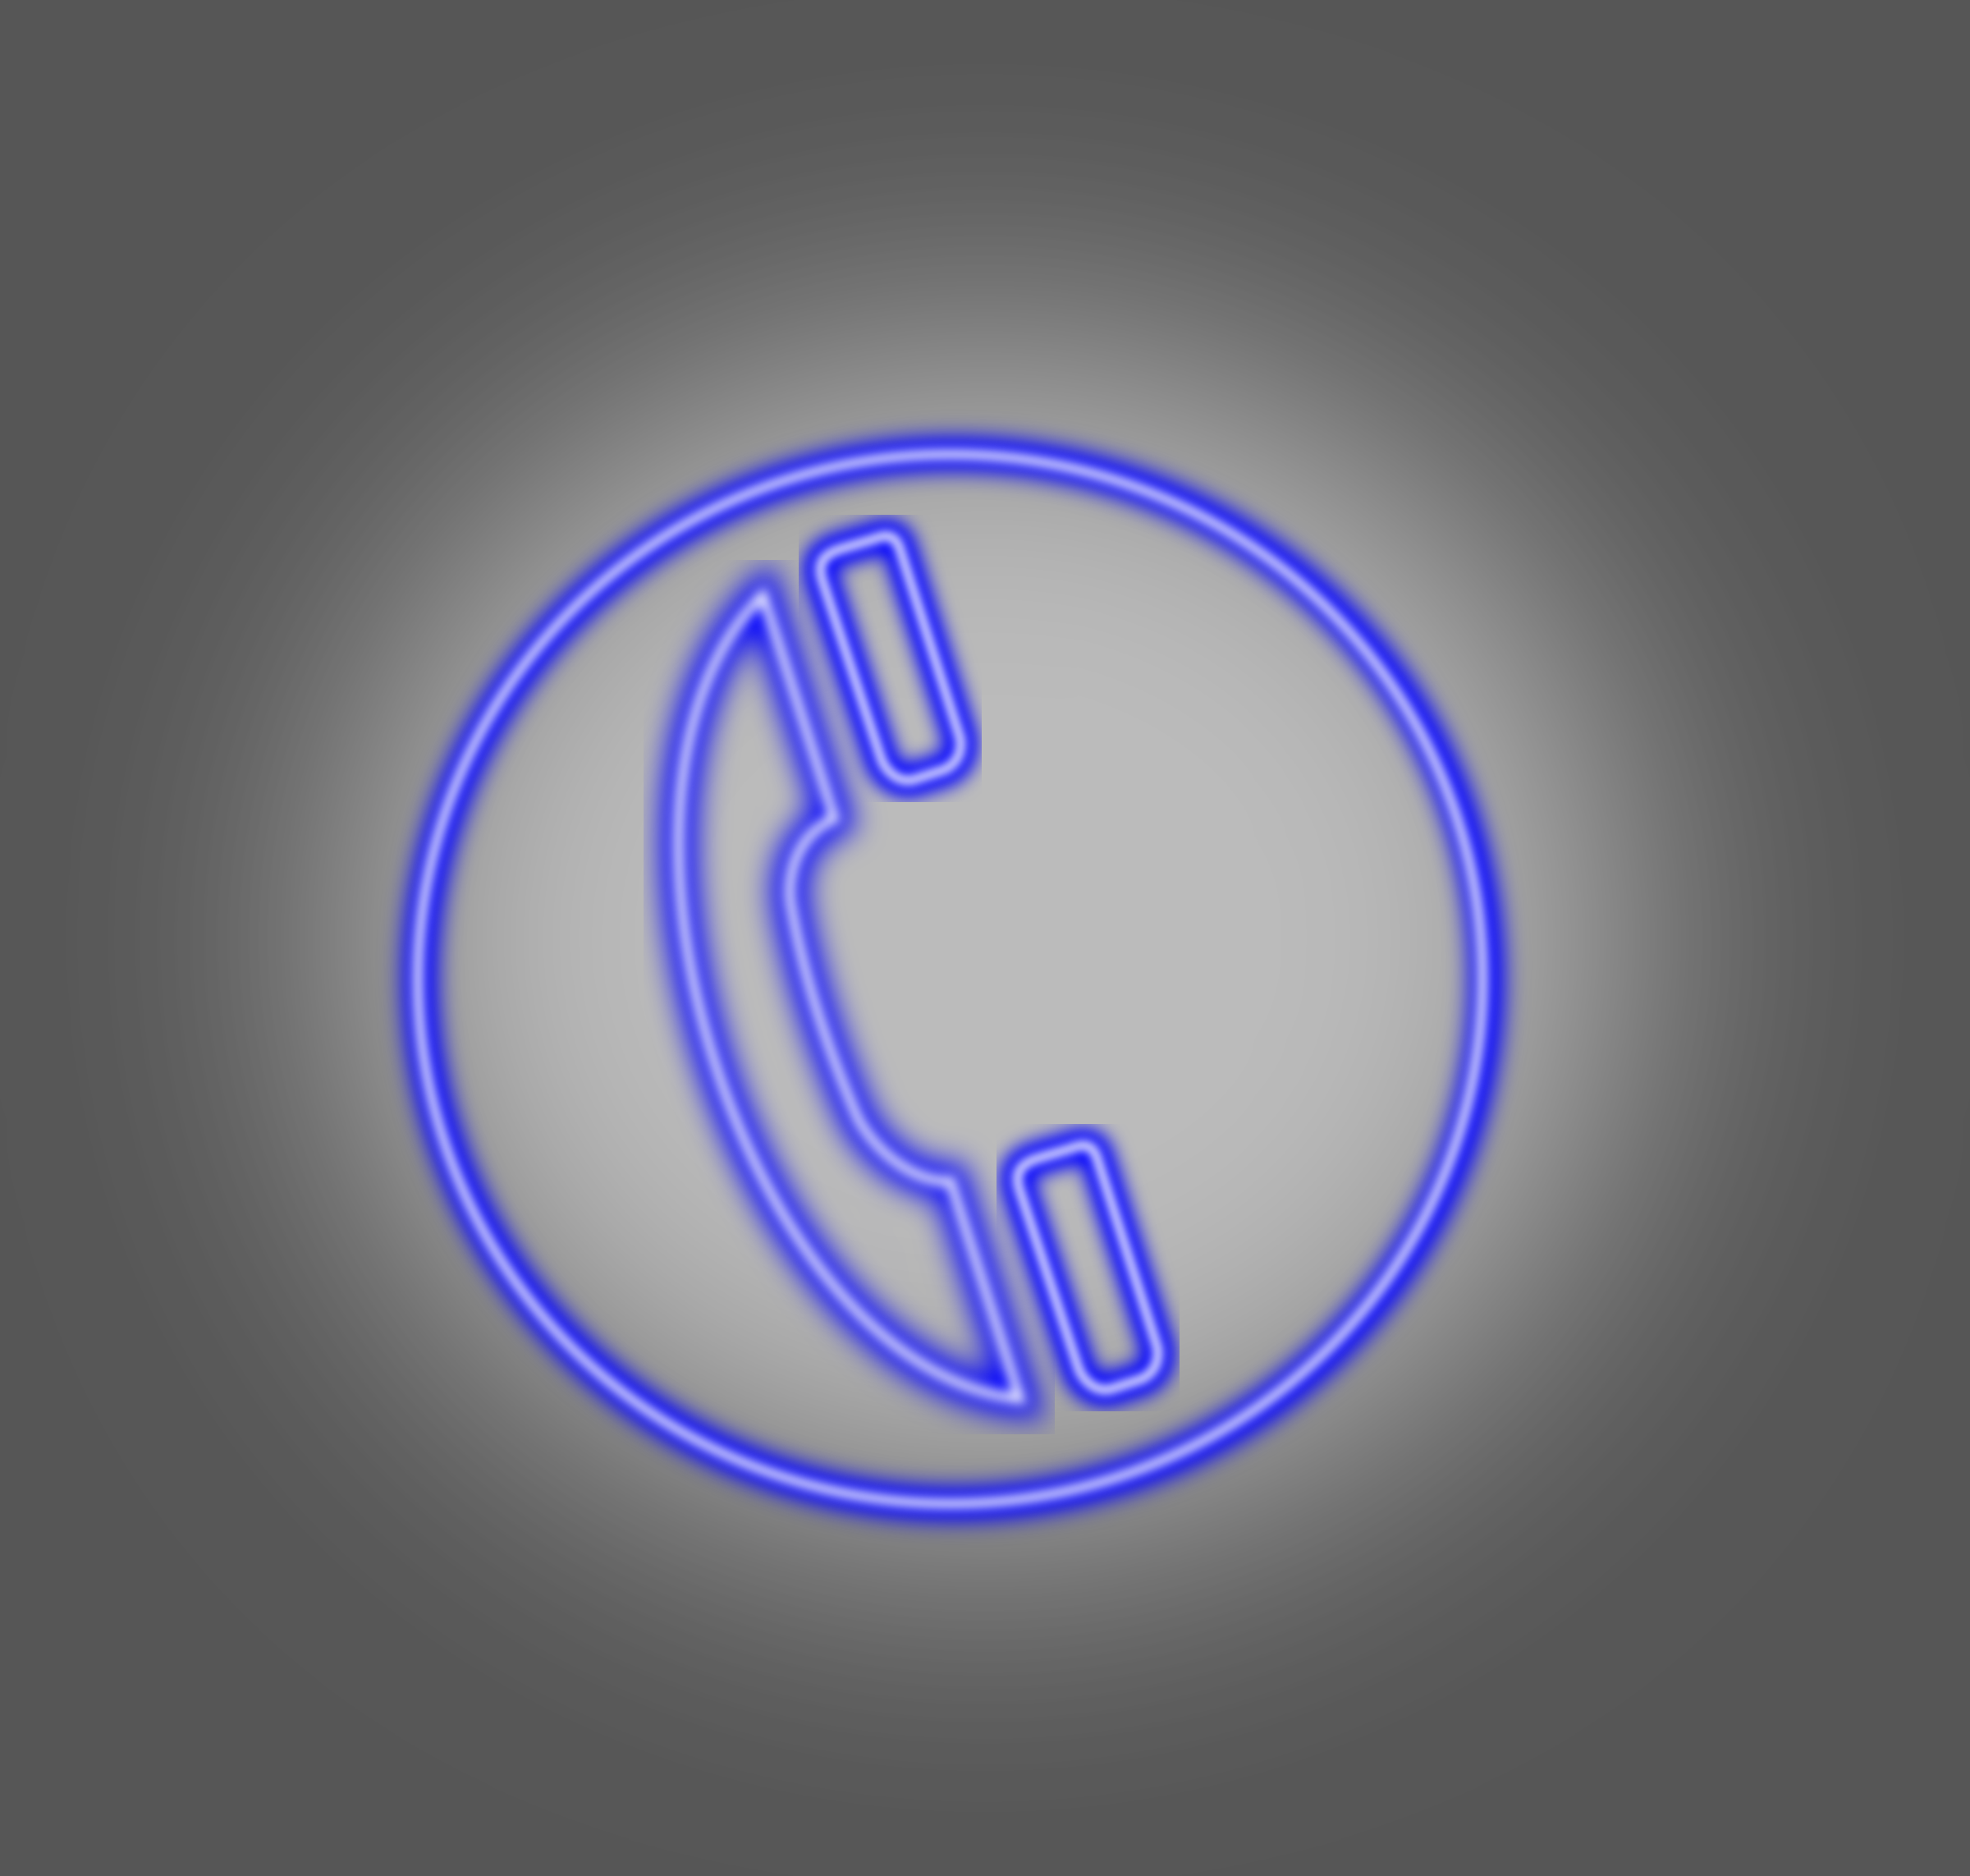 neon_phone_icon_blue by rampa